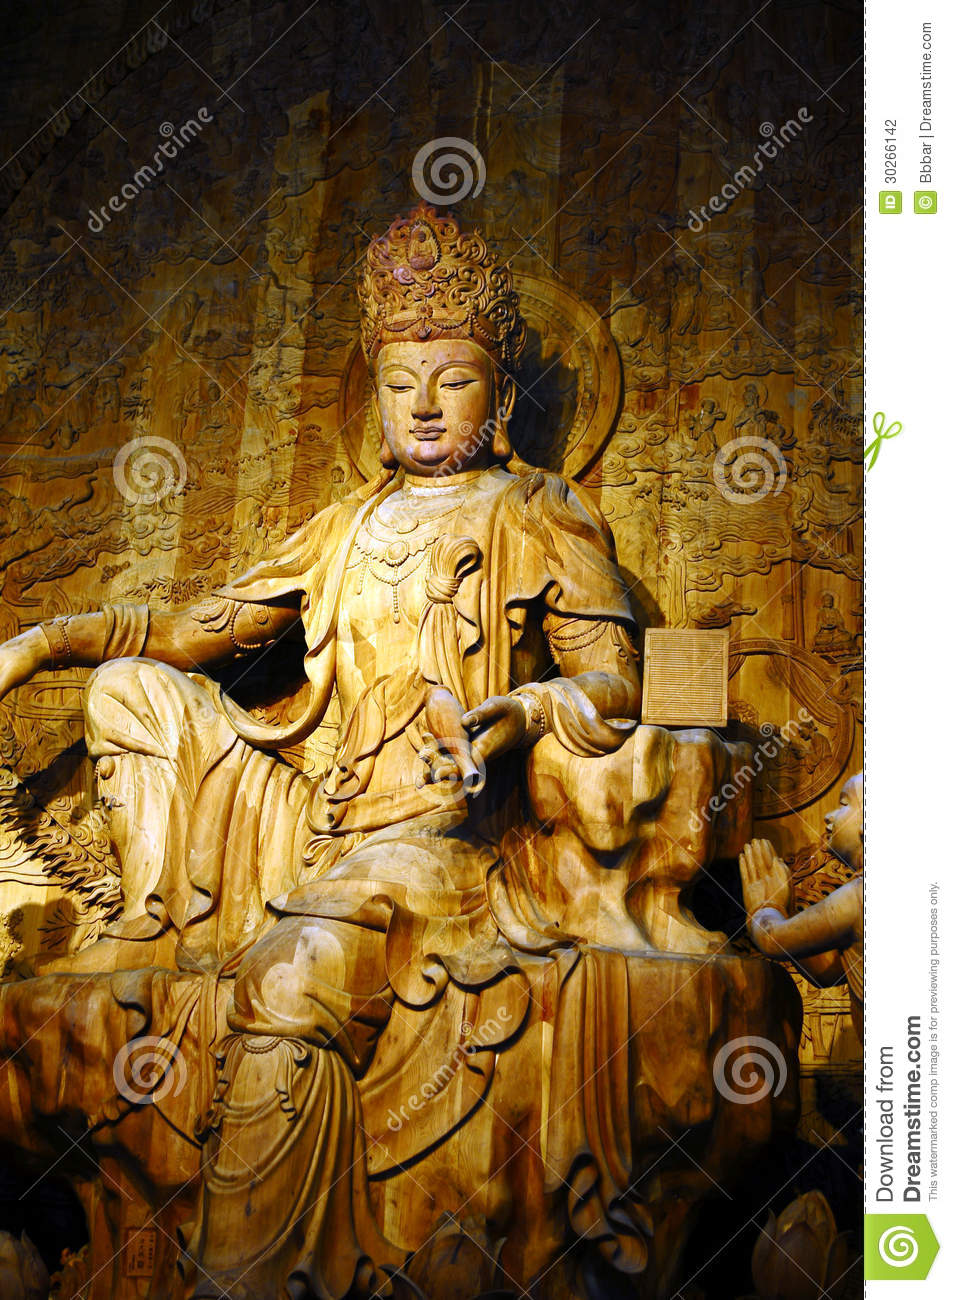 Wood Carving Buddha Stock Photo Image Of Building